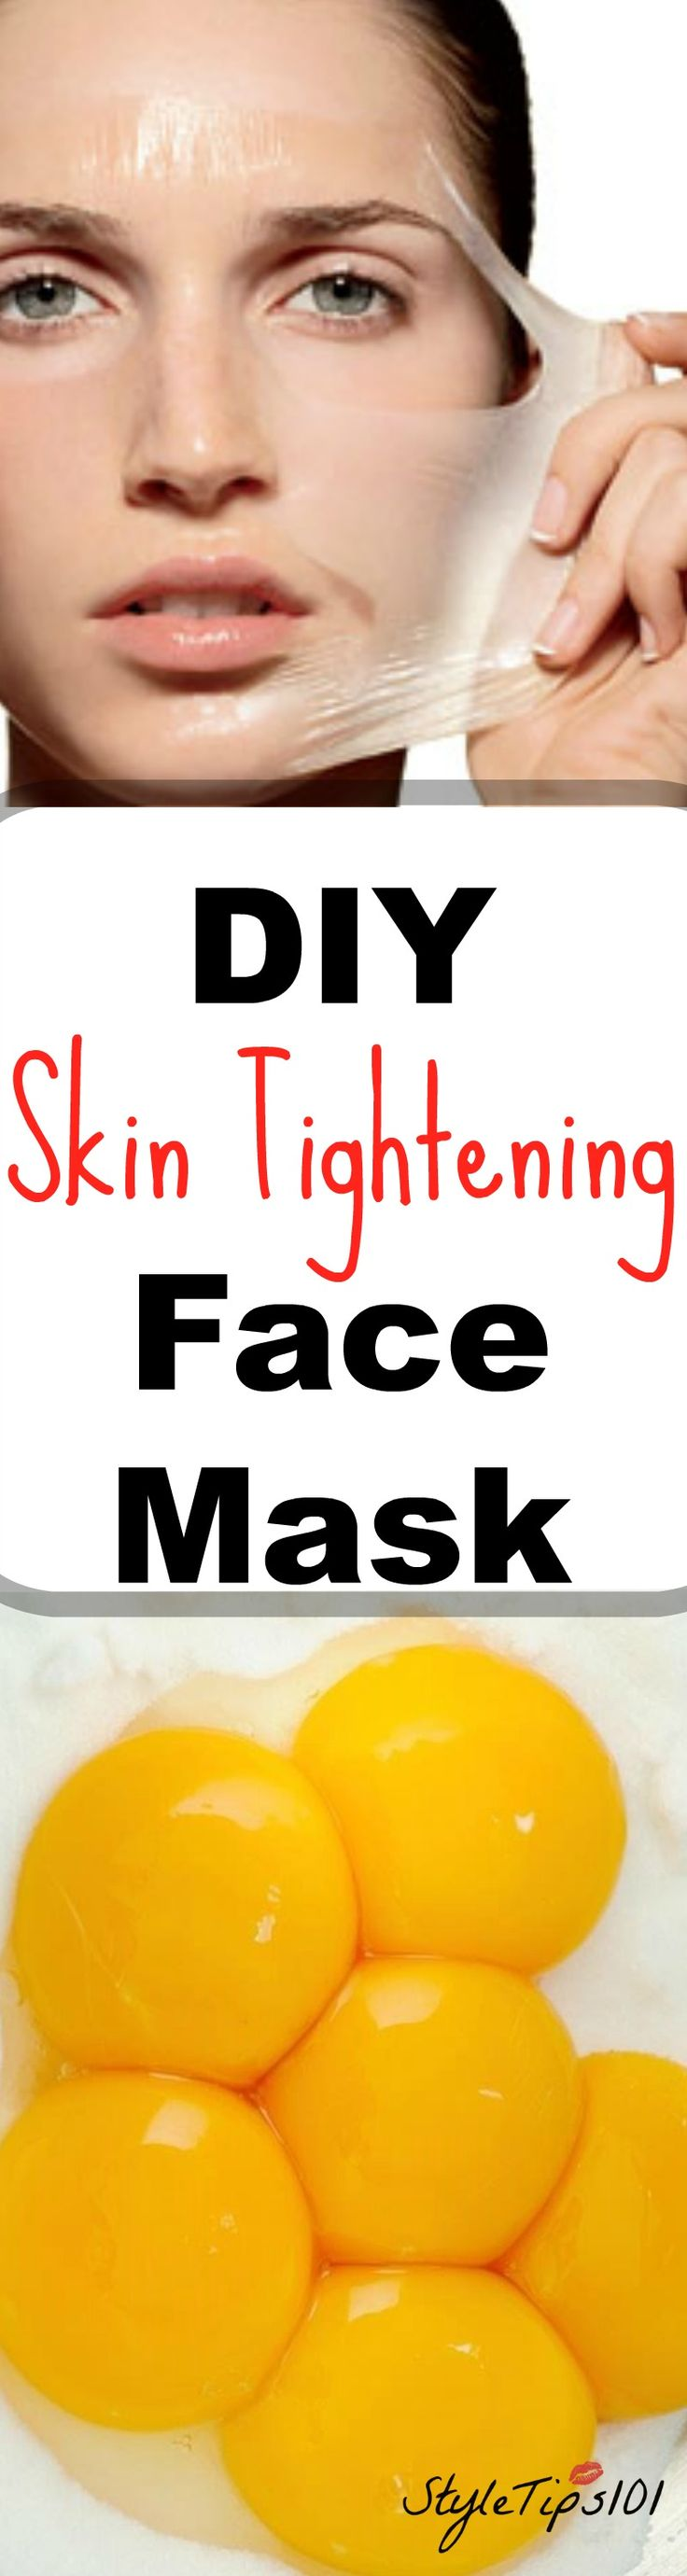 how to keep your face skin tight